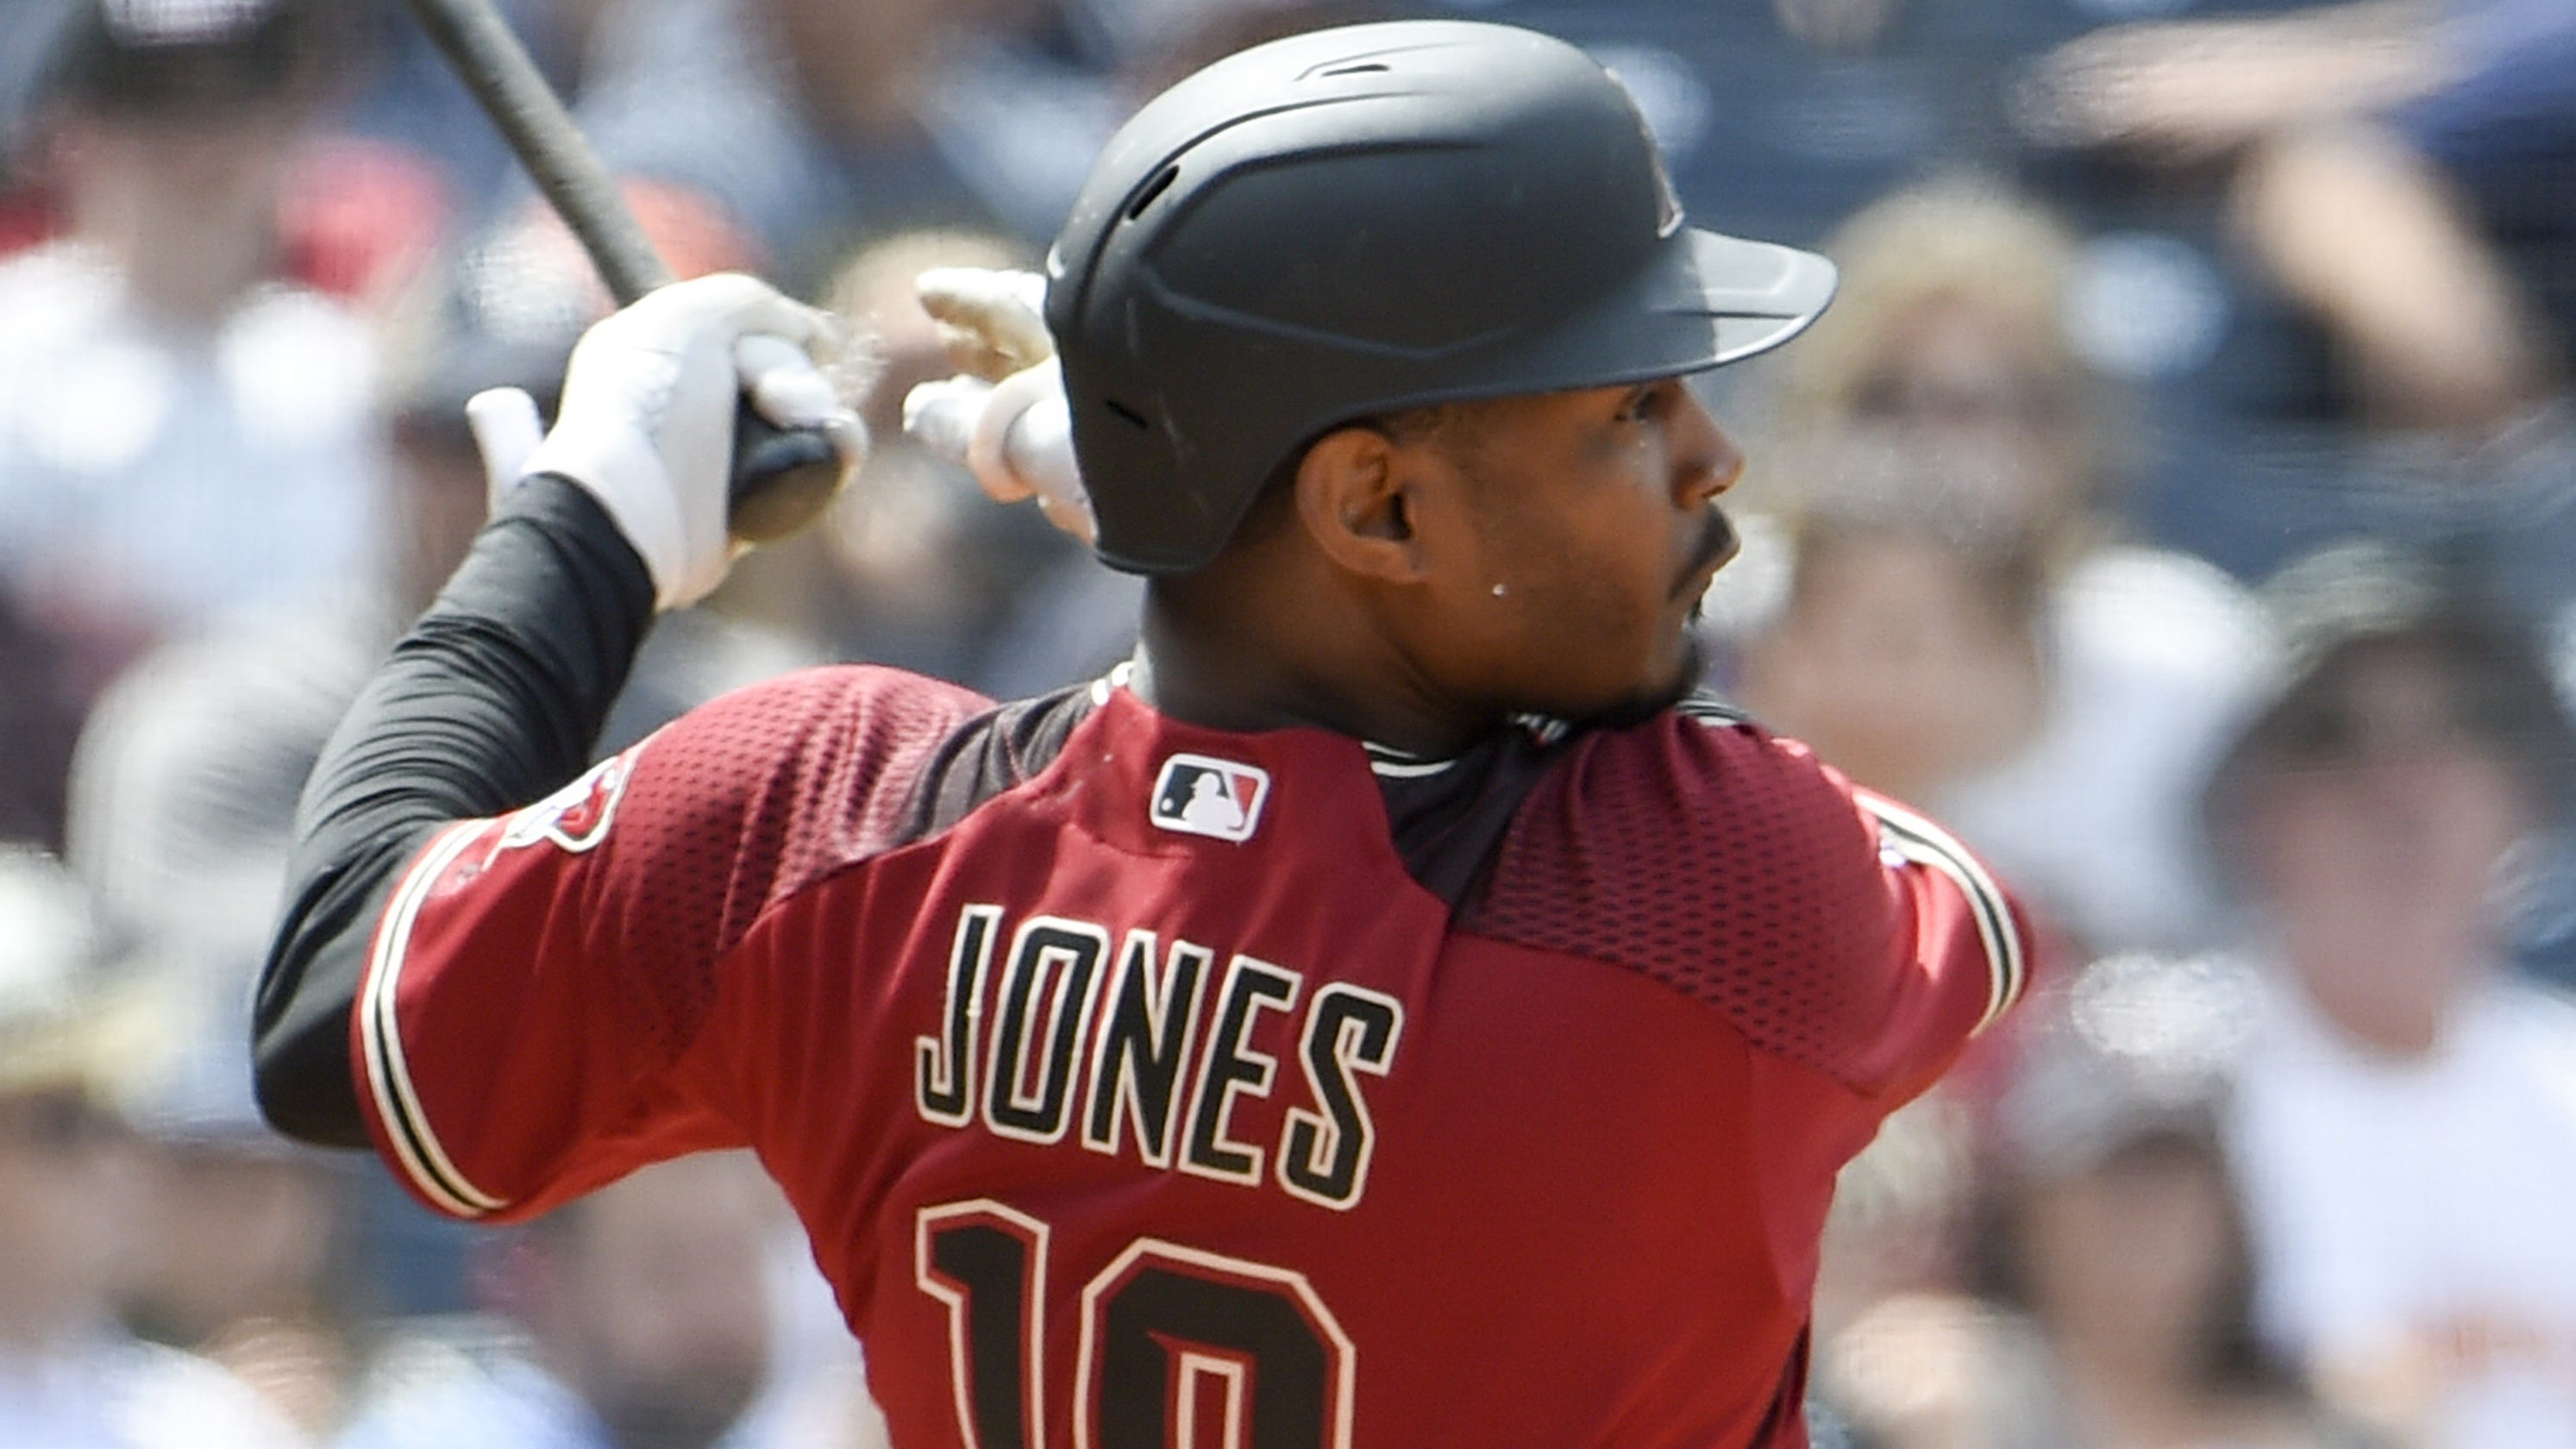 Diamondbacks Adam Jones Has Petco Park Fan Ejected For Vulgar Language